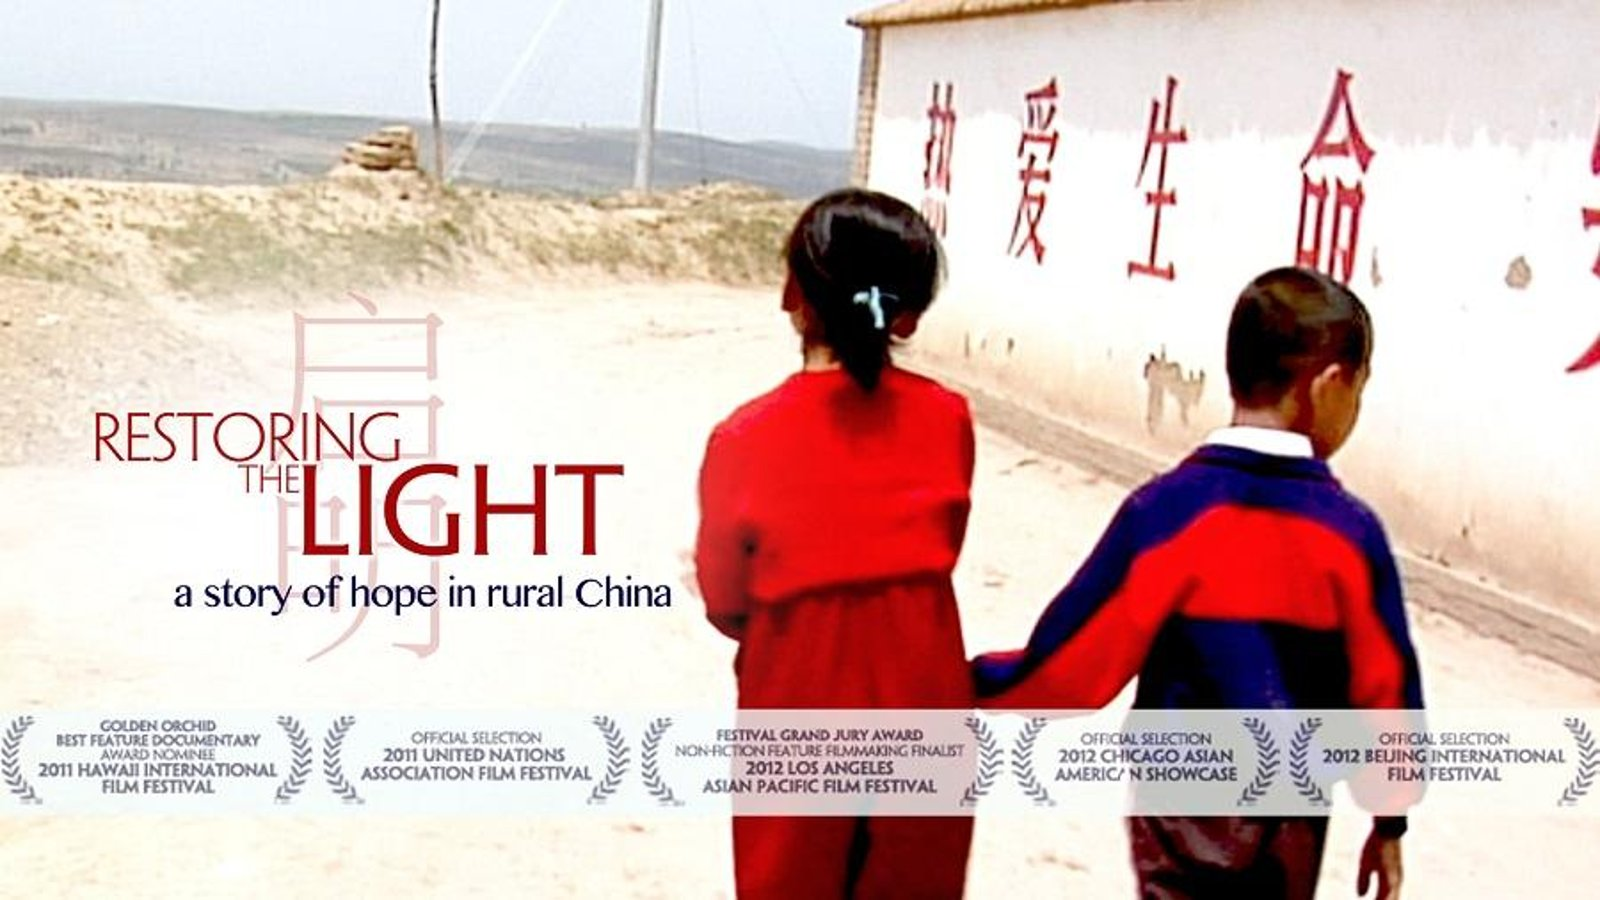 Restoring the Light - A Rural Doctor Brings Healthcare to Chinese Villagers